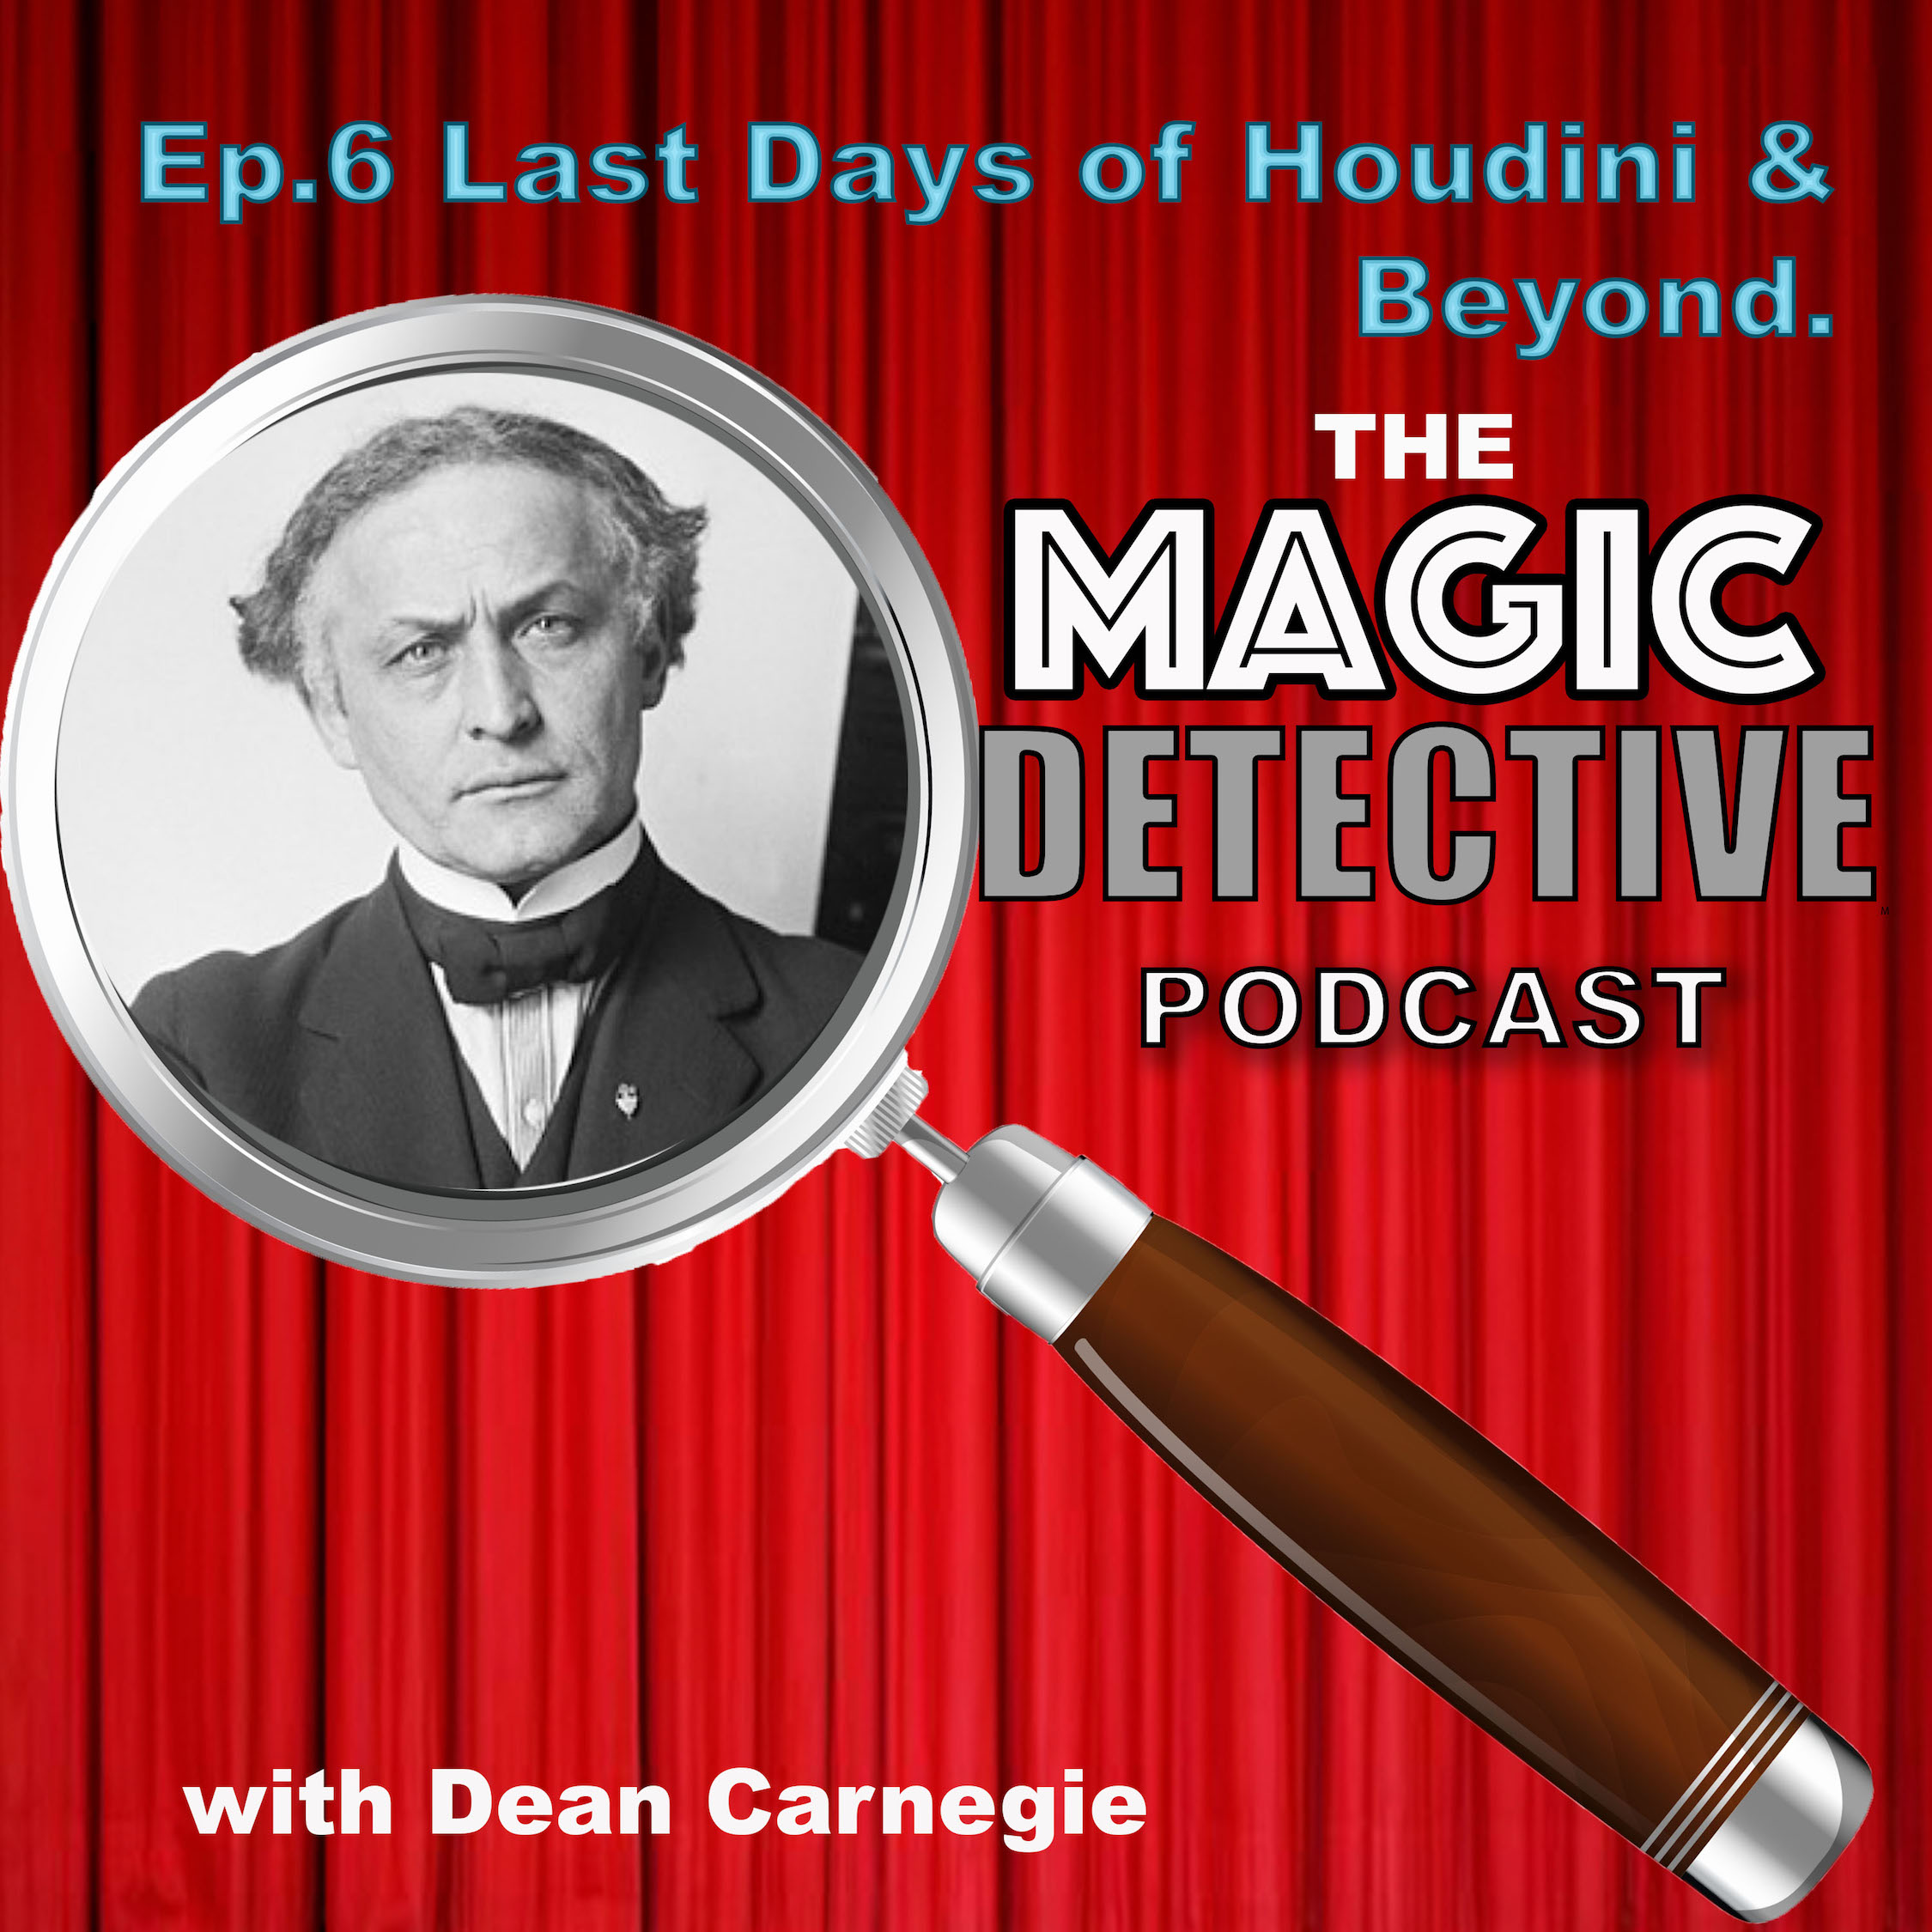 Magic Detective Podcast Ep 6- The Last Days of Houdini & Beyond